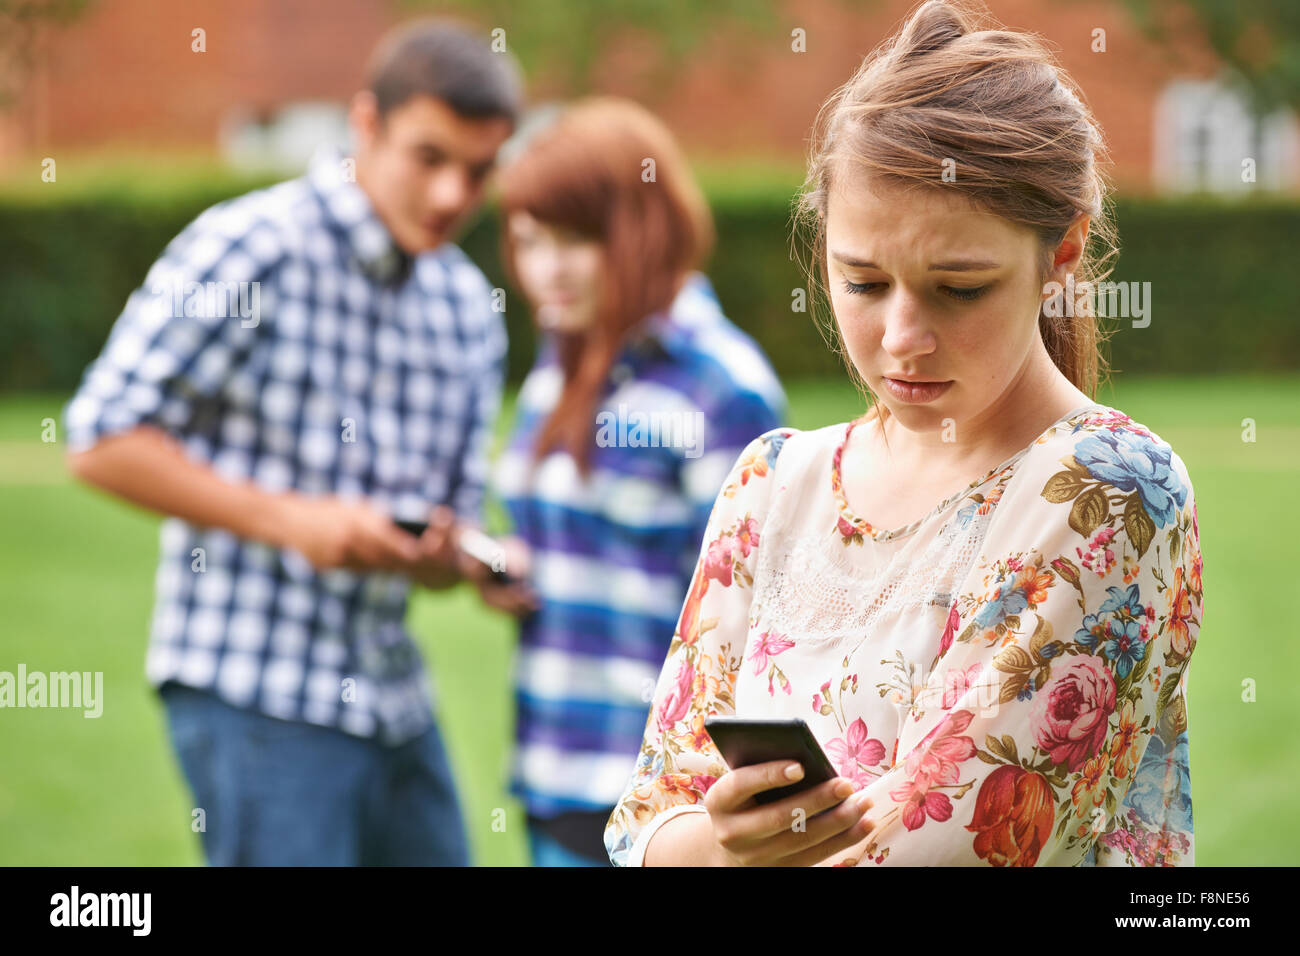 Teenage Girl Victim Of Bullying By Text Message - Stock Image